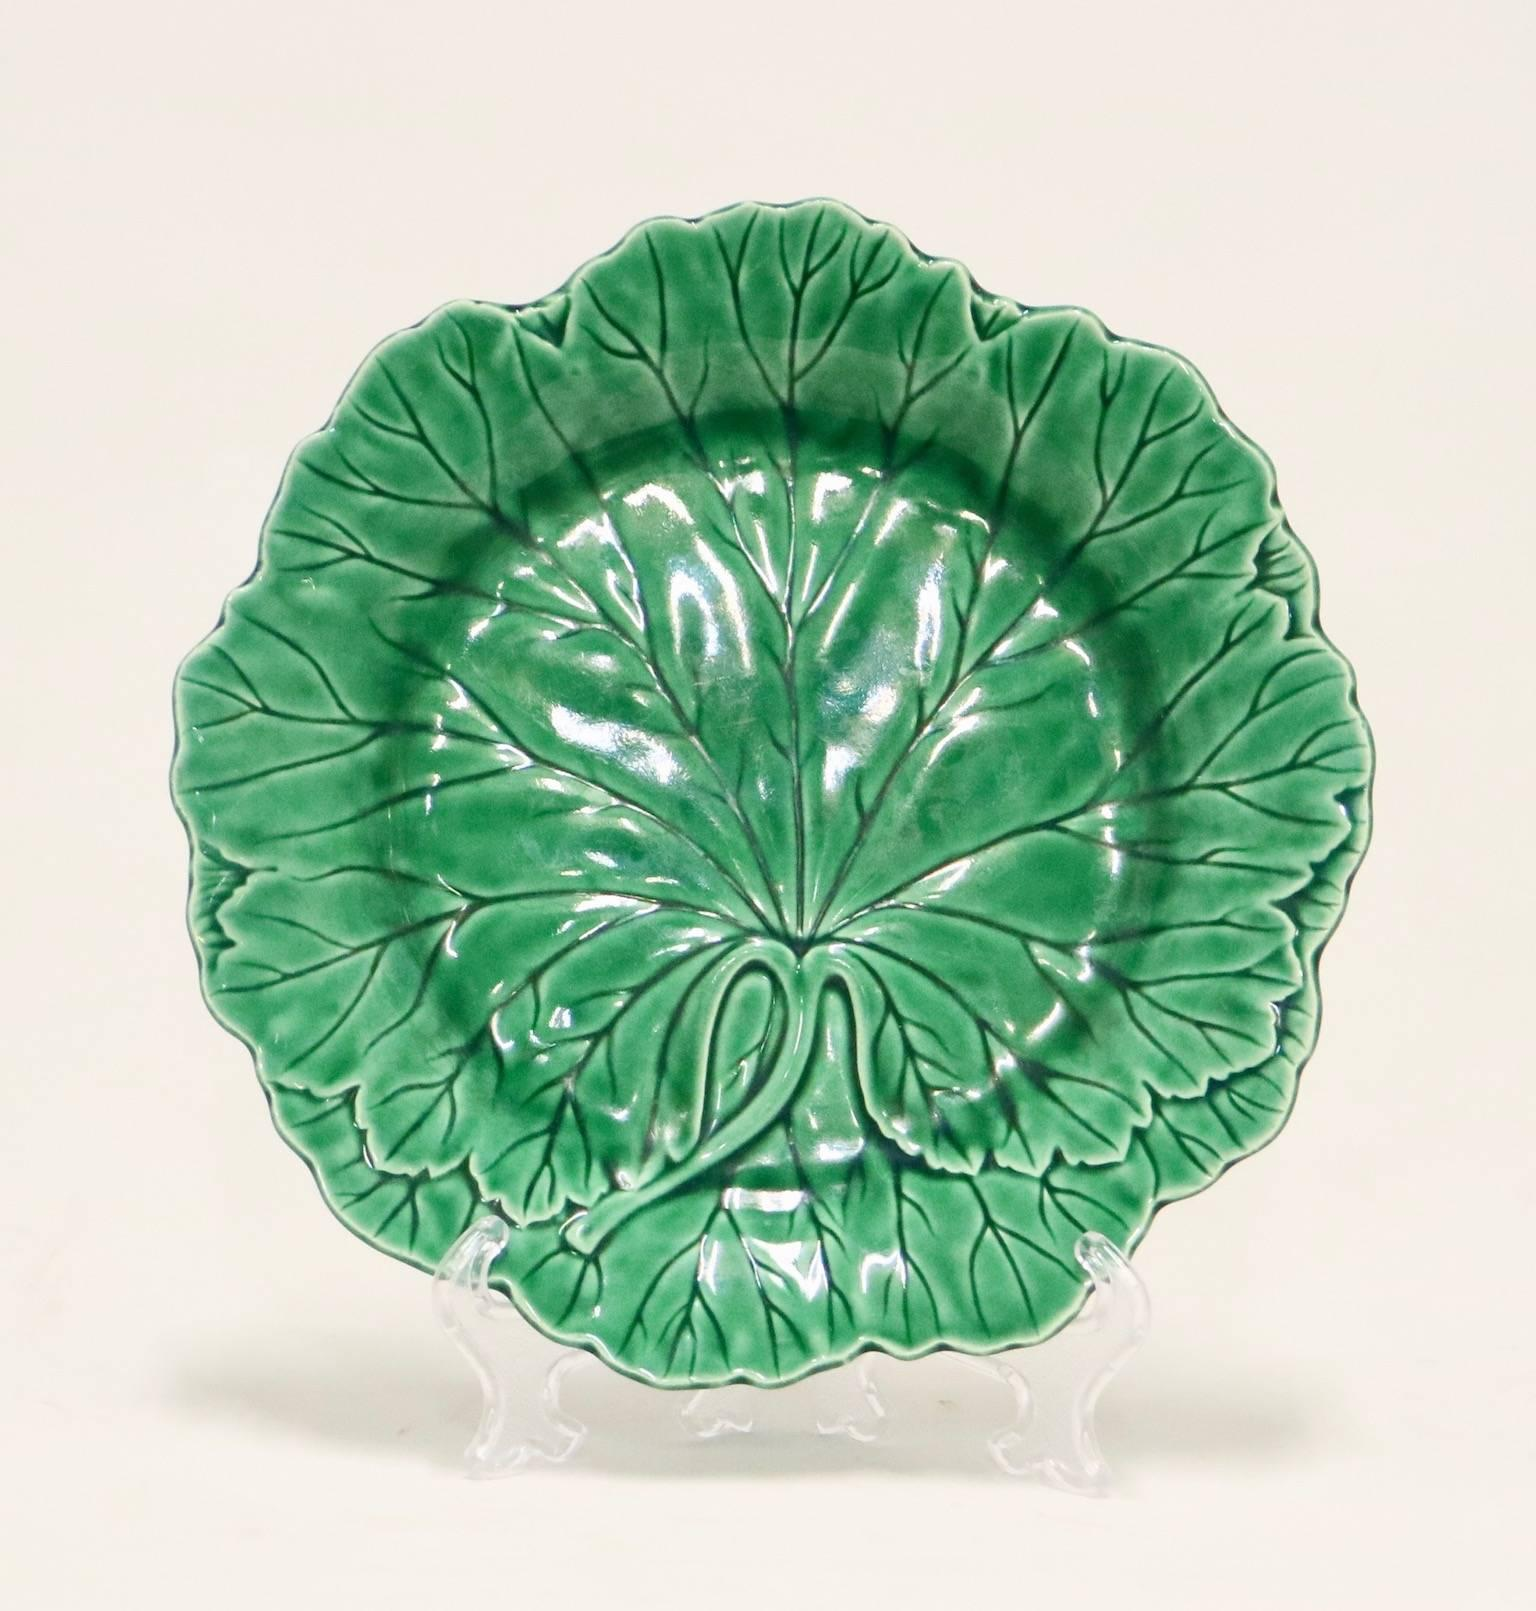 & Wedgwood Majolica Cabbage Leaf Plates at 1stdibs